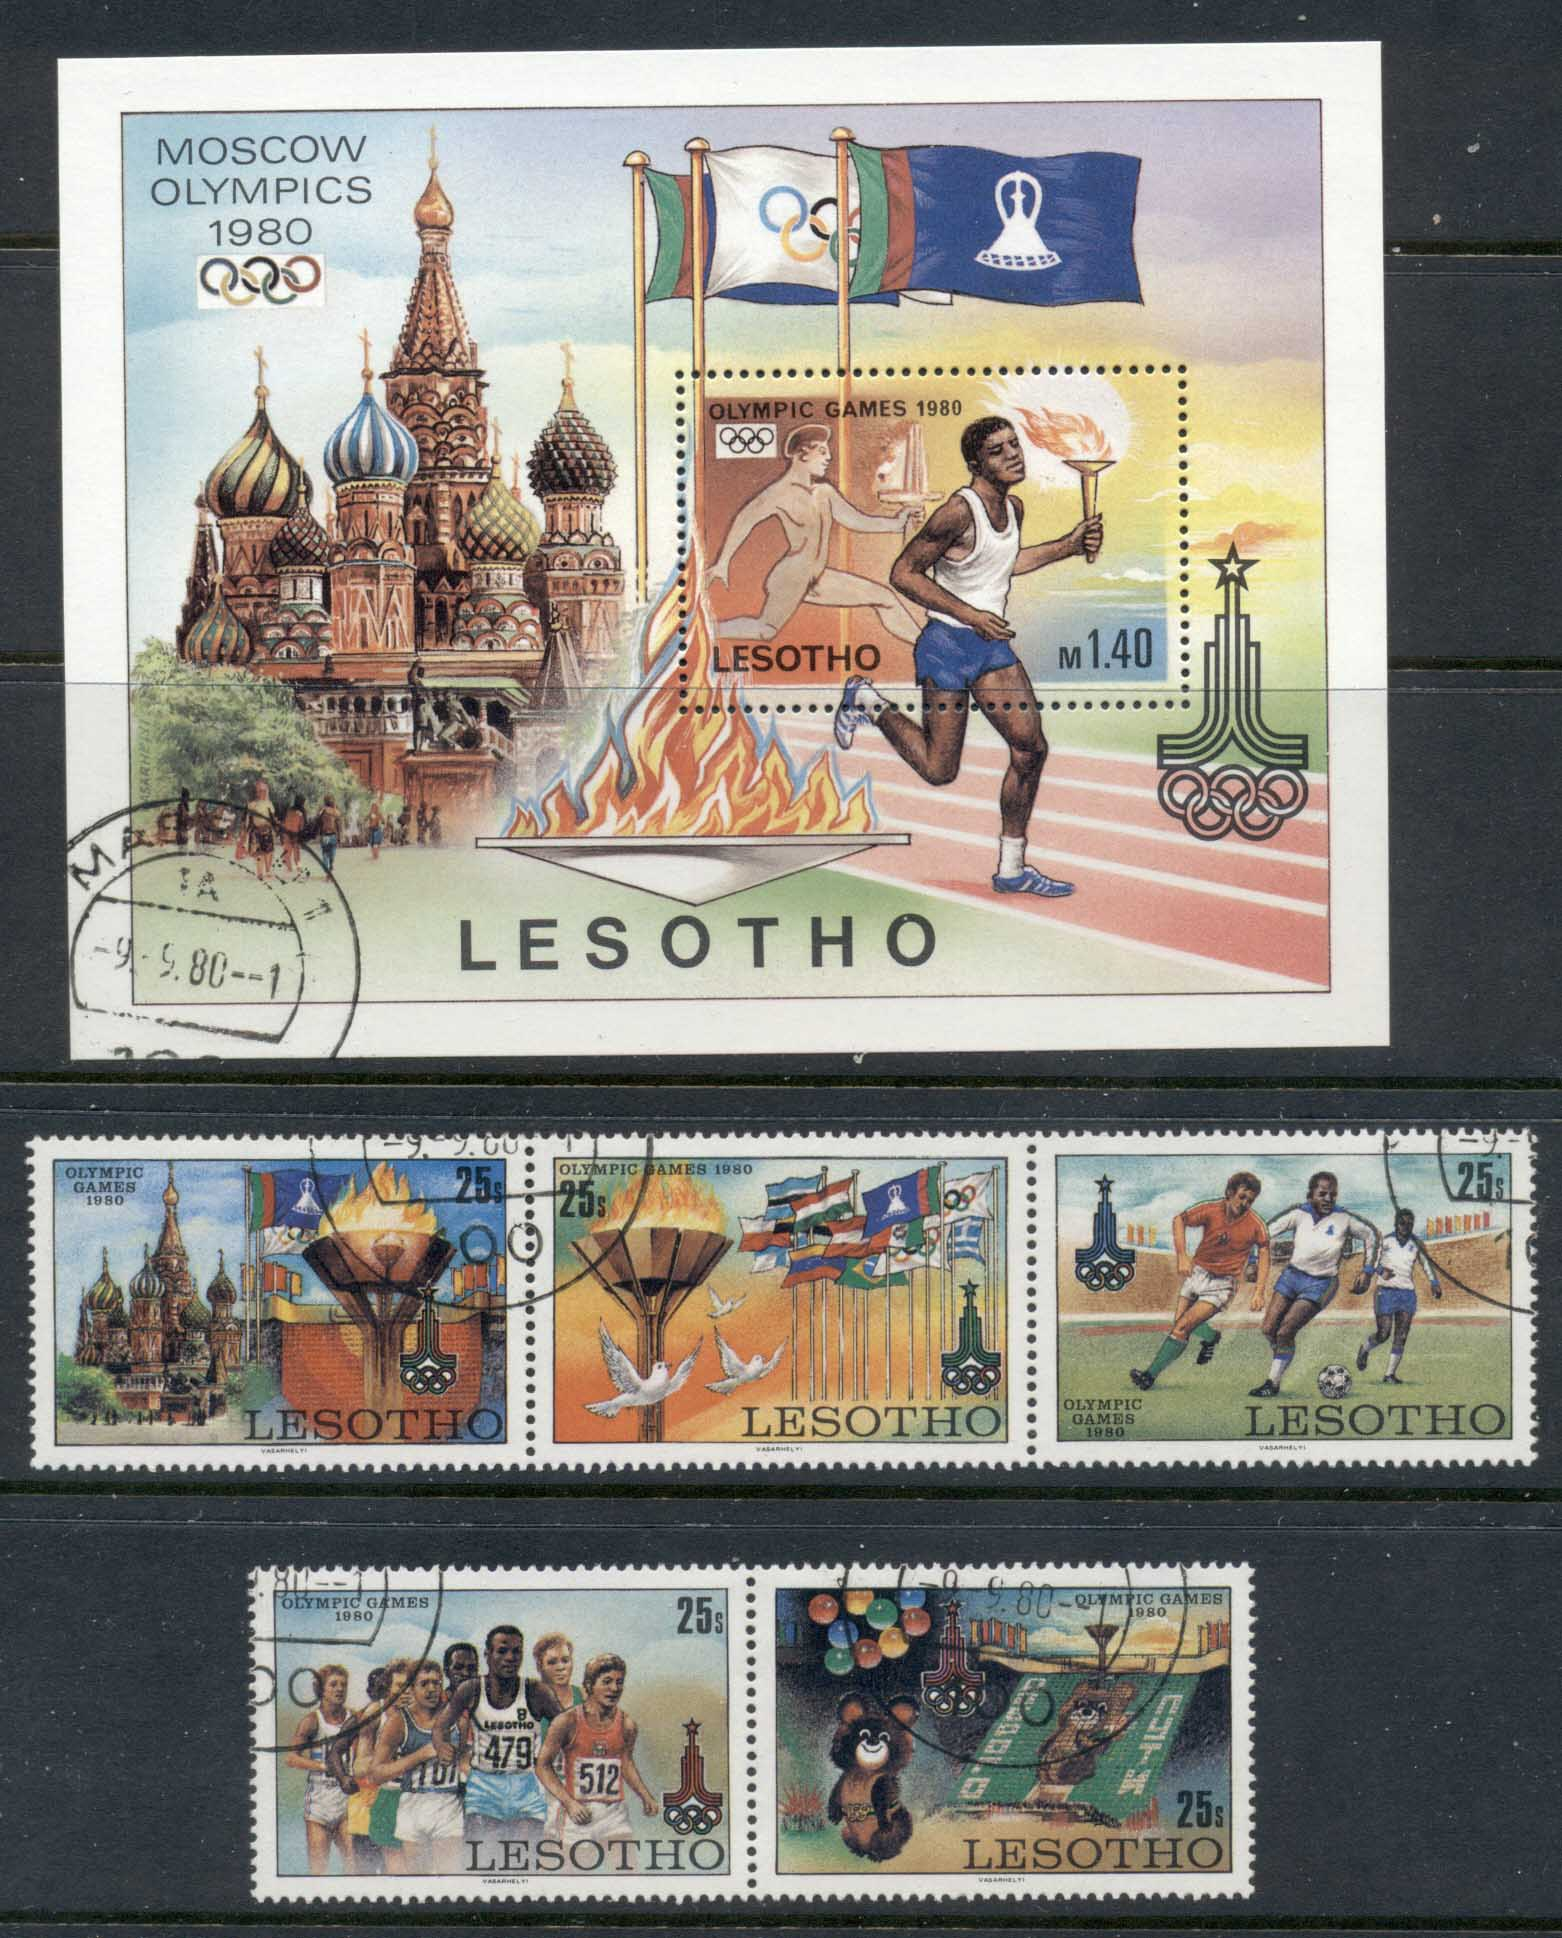 Lesotho 1980 Summer Olympics Moscow + MS FU